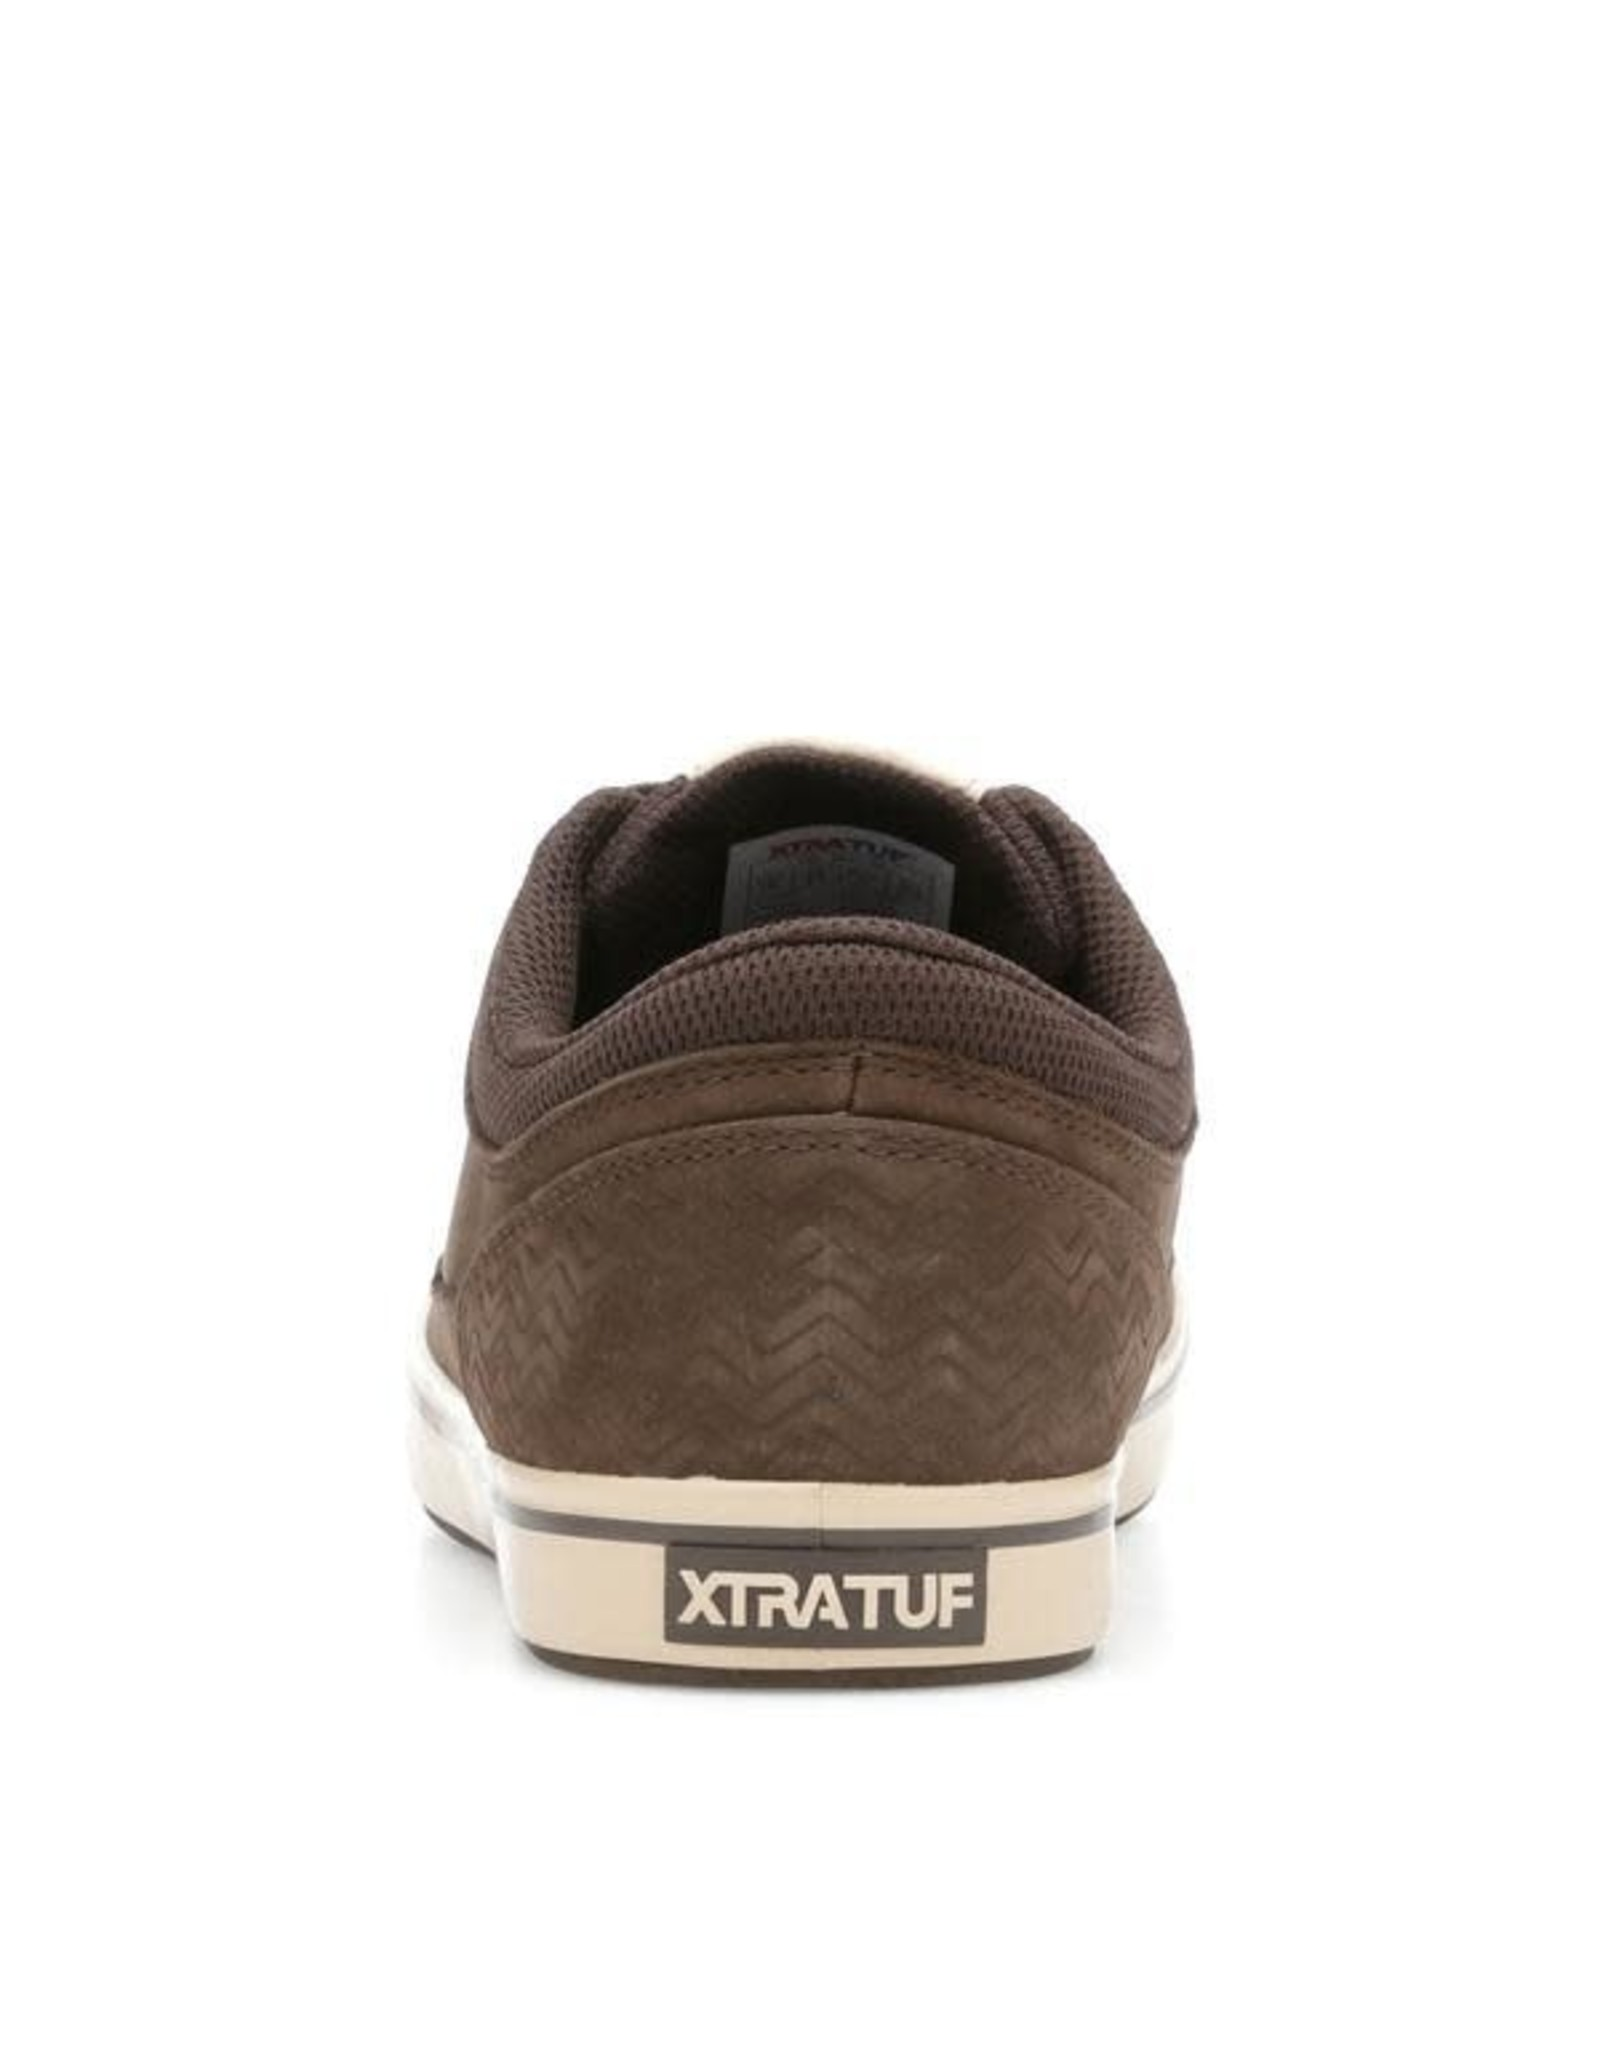 XtraTuf Chumrunner Leather